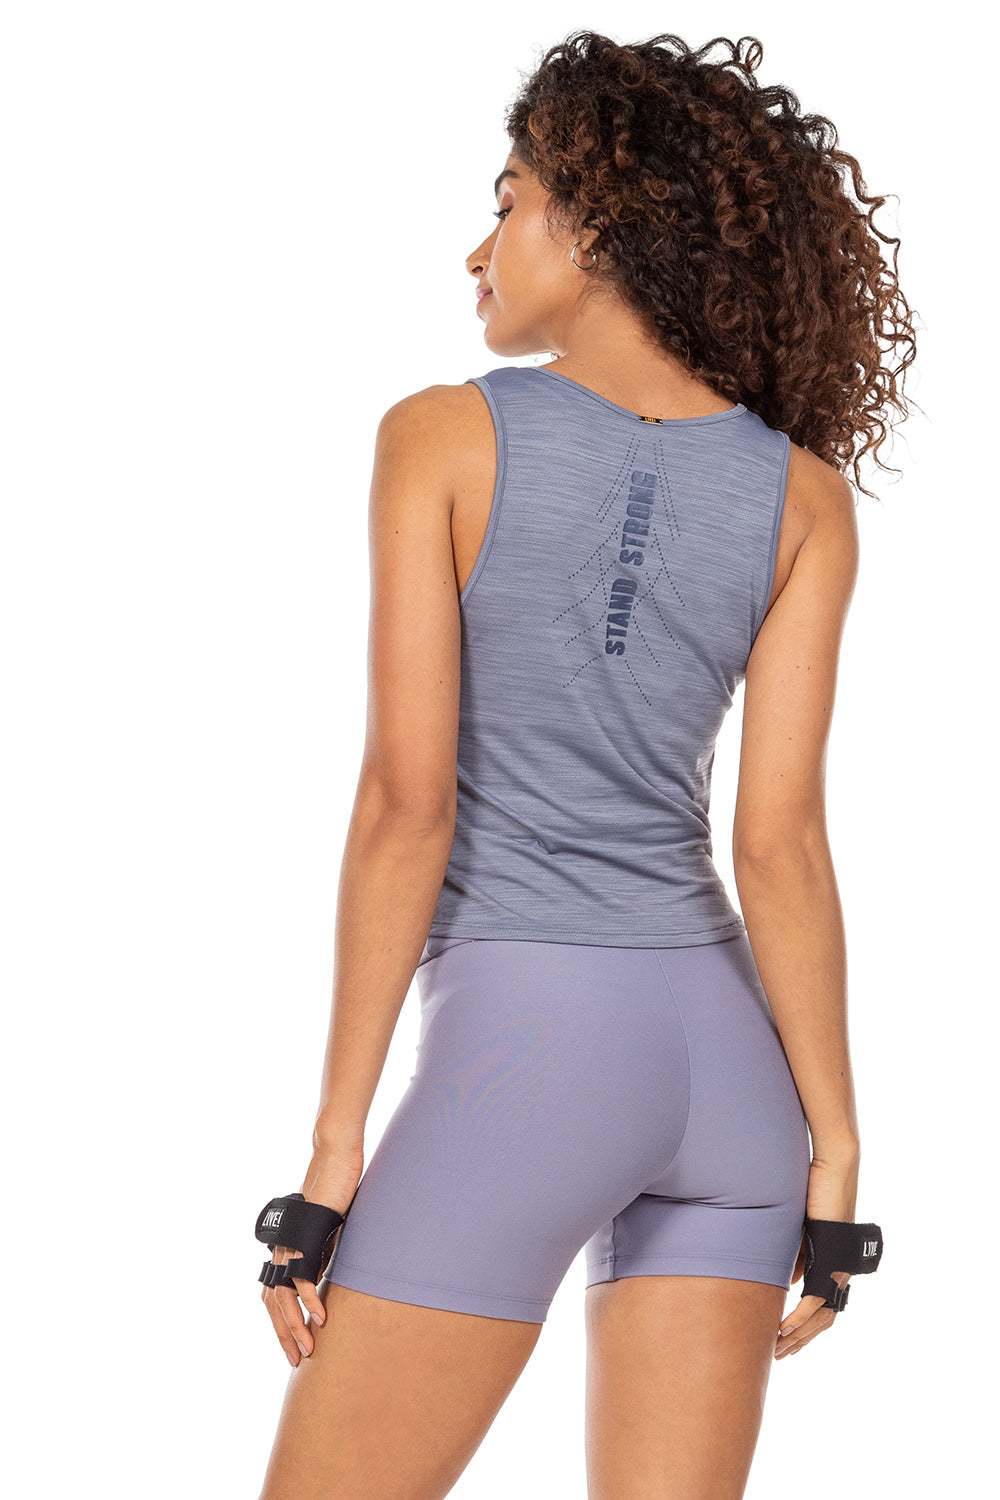 Stand Strong Racer Tank 2